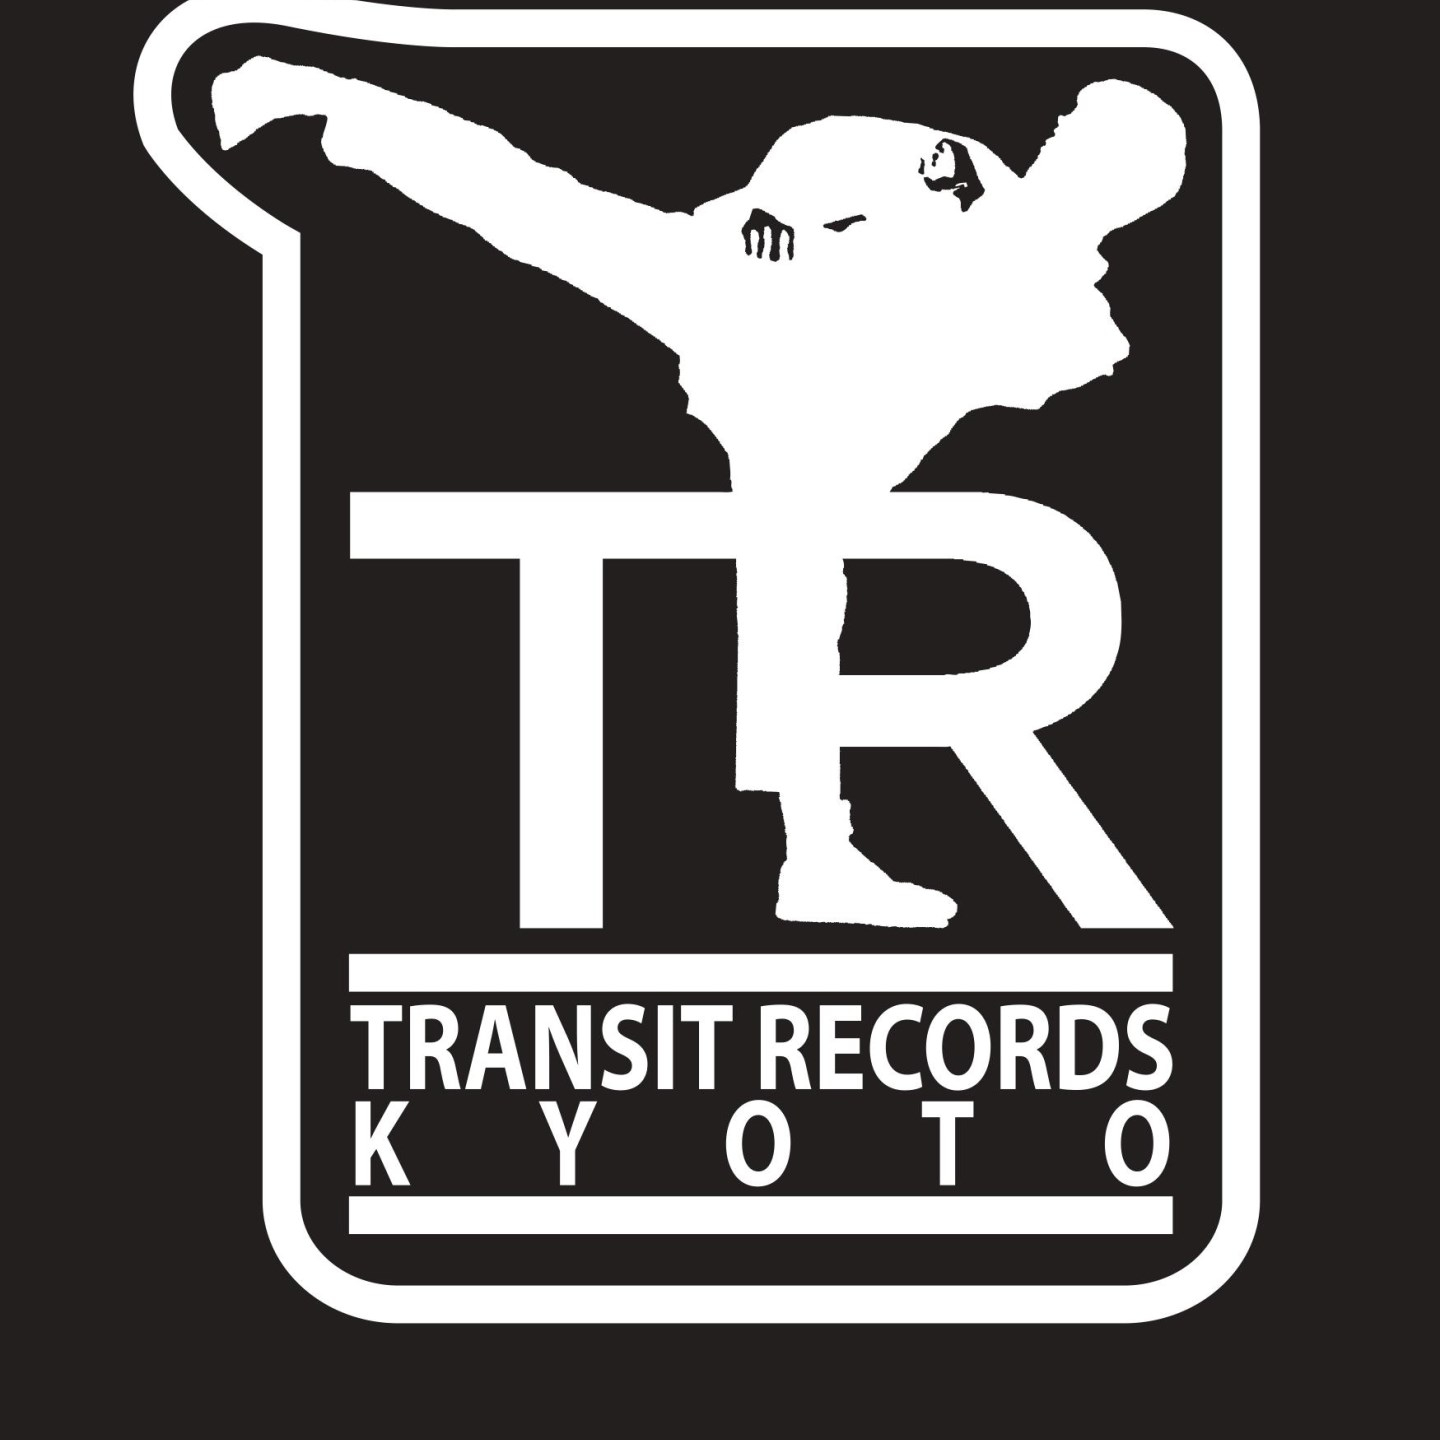 Transit Records Kyoto